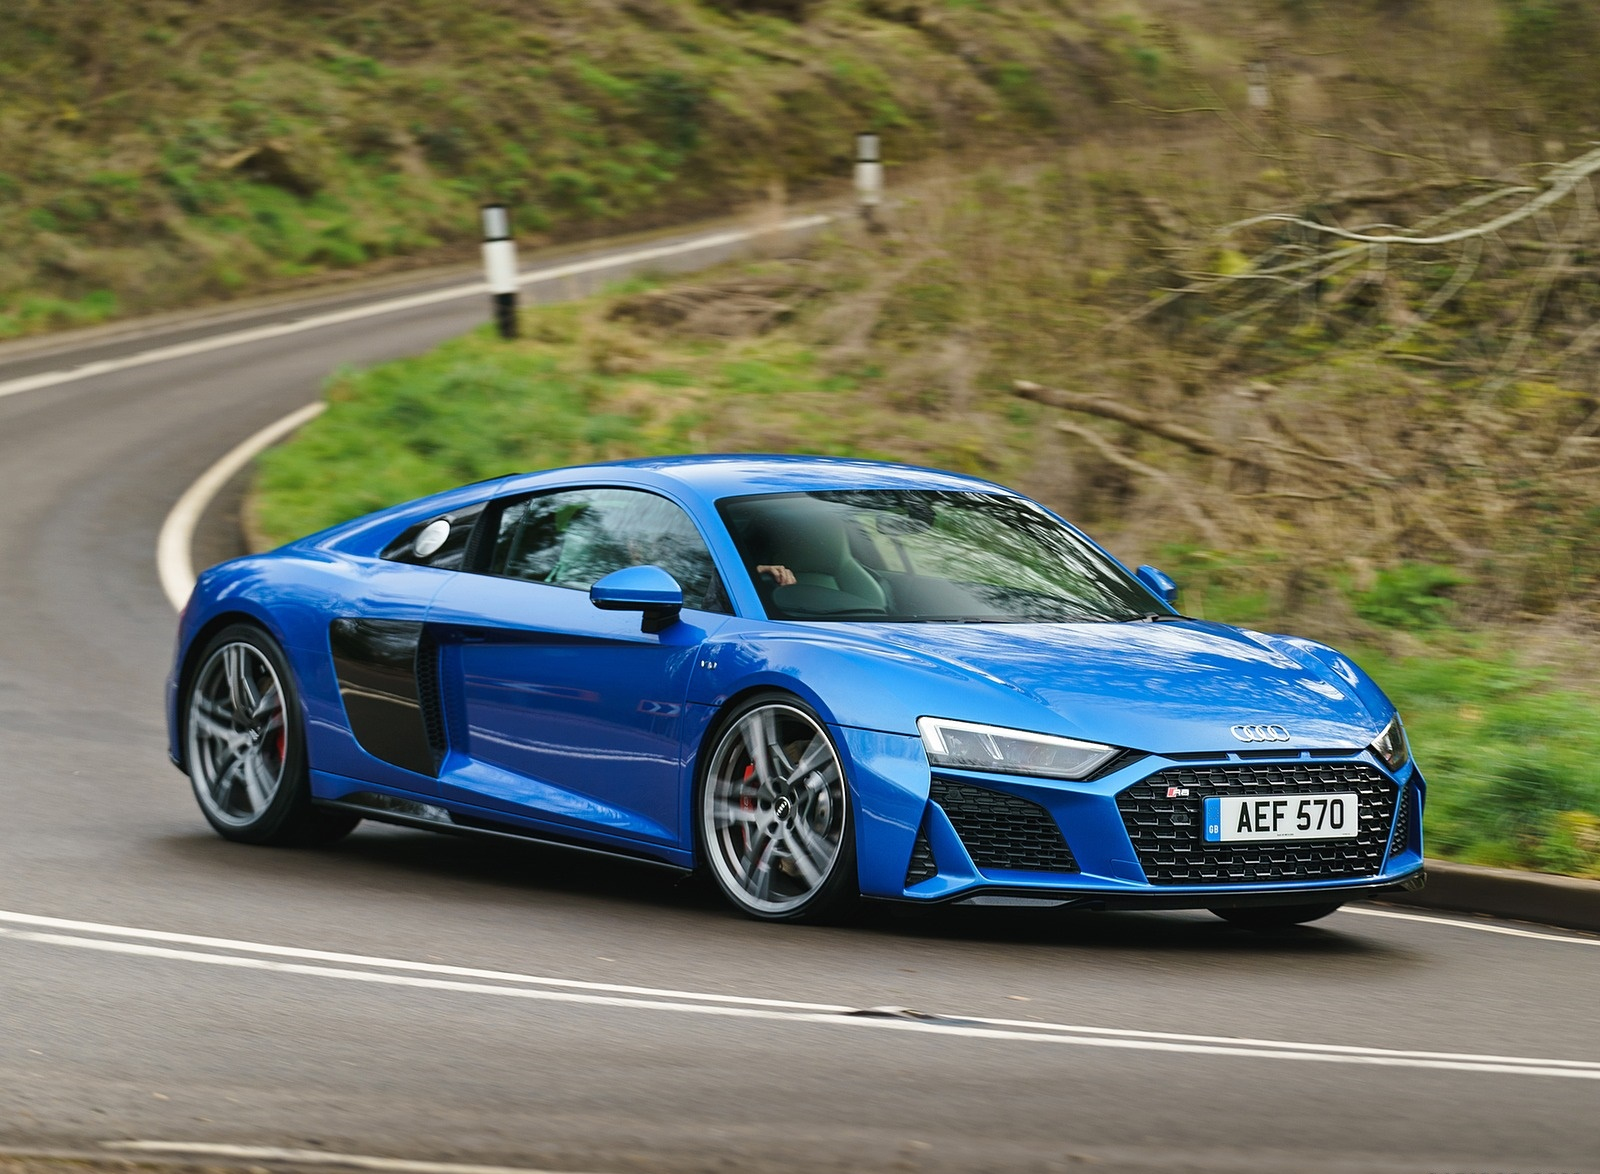 2019 Audi R8 V10 Coupe quattro (UK-Spec) Front Three-Quarter Wallpaper (7)